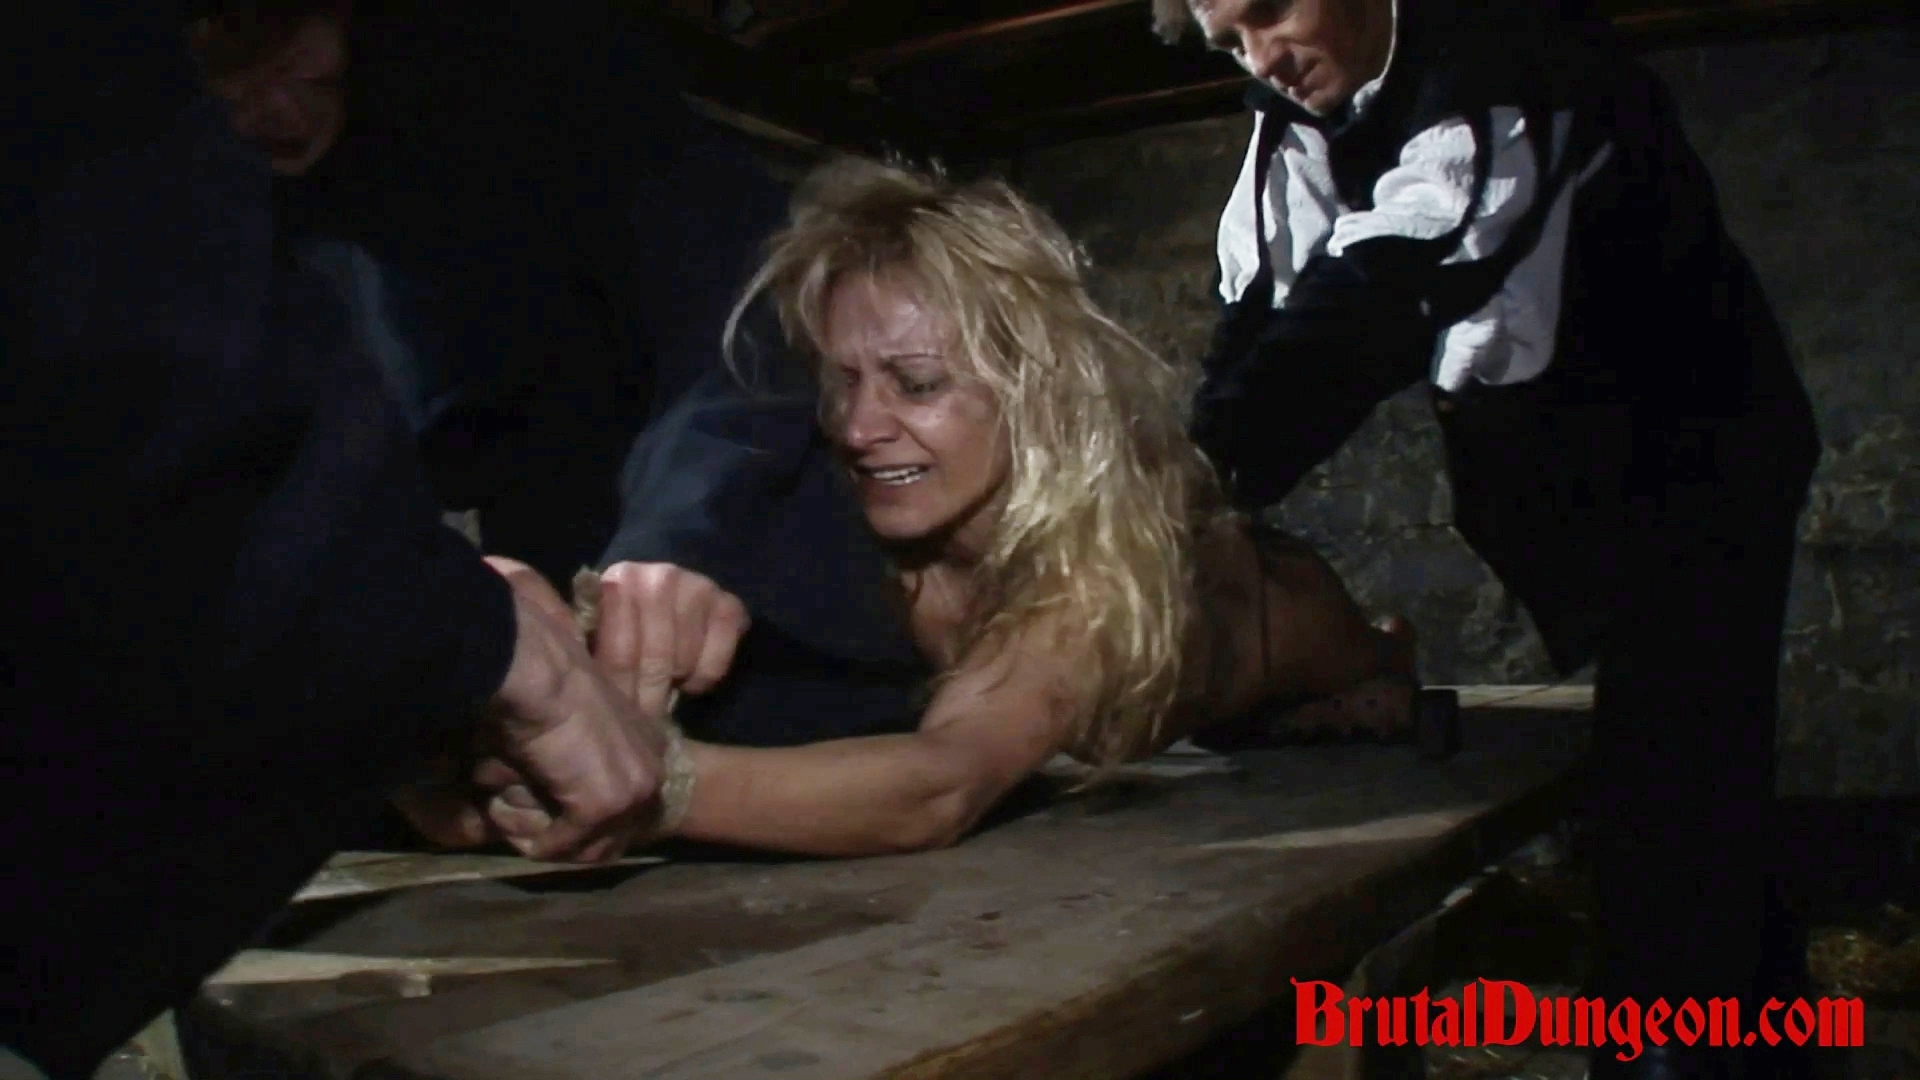 Blonde romina is brought to a specialist prison to serve her term getting gangbanged  blonde sorceress romina was caught conjuring spirits with her coven  romina must endure imprisonment bdsm gang bang domination bondage and suspension spanking slapping f. Blonde Sorceress Romina was caught conjuring spirits with her coven. Romina must endure imprisonment, BDSM gang bang, domination, bondage and suspension, spanking, slapping, fingering, breast, nipple and kitty tortured with a bondage table and spiked roller.